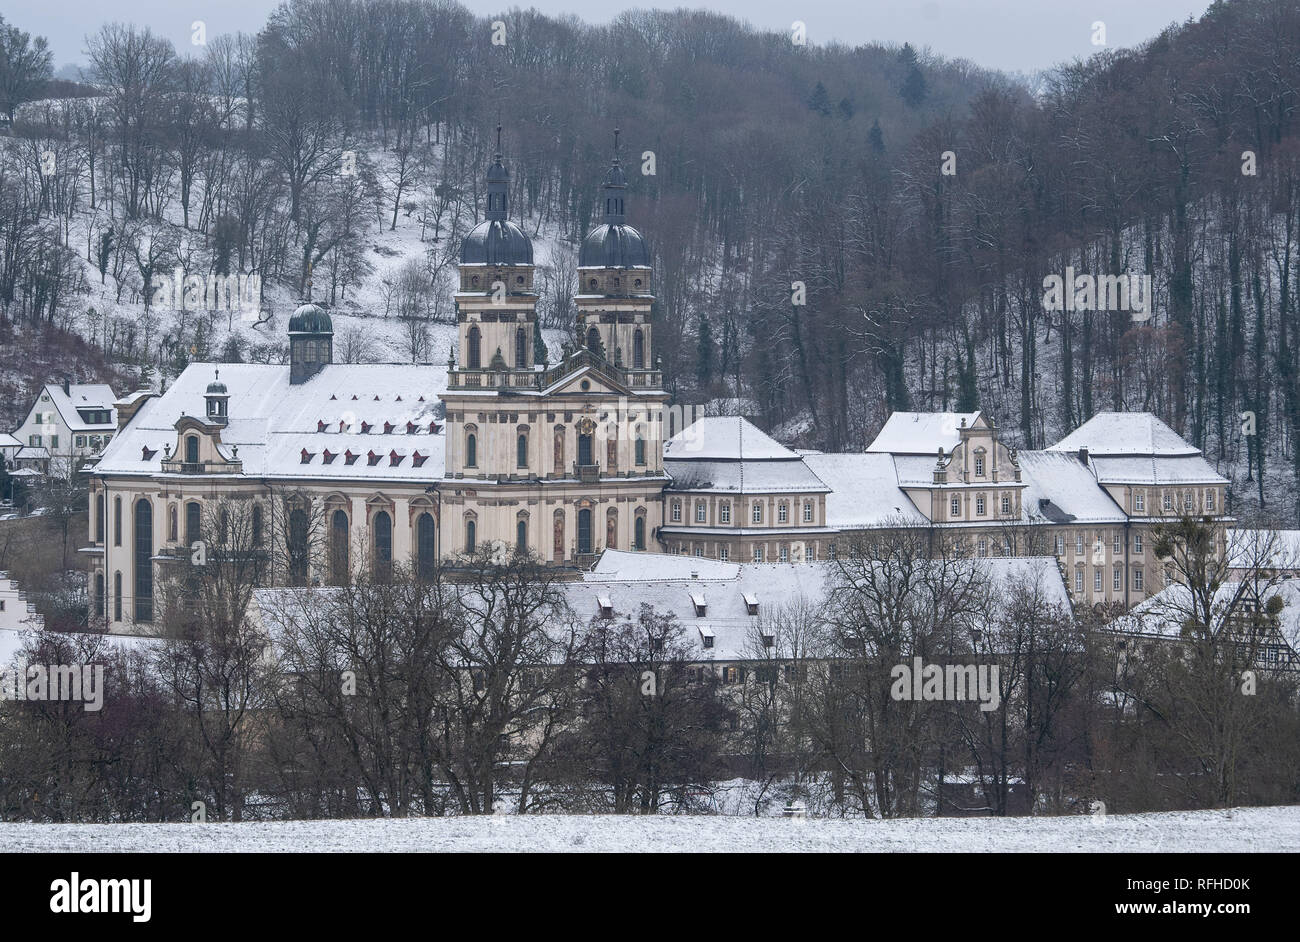 Kloster Schöntal, Baden-Wuerttemberg, Germany. 26th January 2019. The Schöntal Monastery. This is where the CDU Baden-Württemberg's conference for functionaries and elected representatives takes place. Photo: Sebastian Gollnow/dpa Credit: dpa picture alliance/Alamy Live News - Stock Image